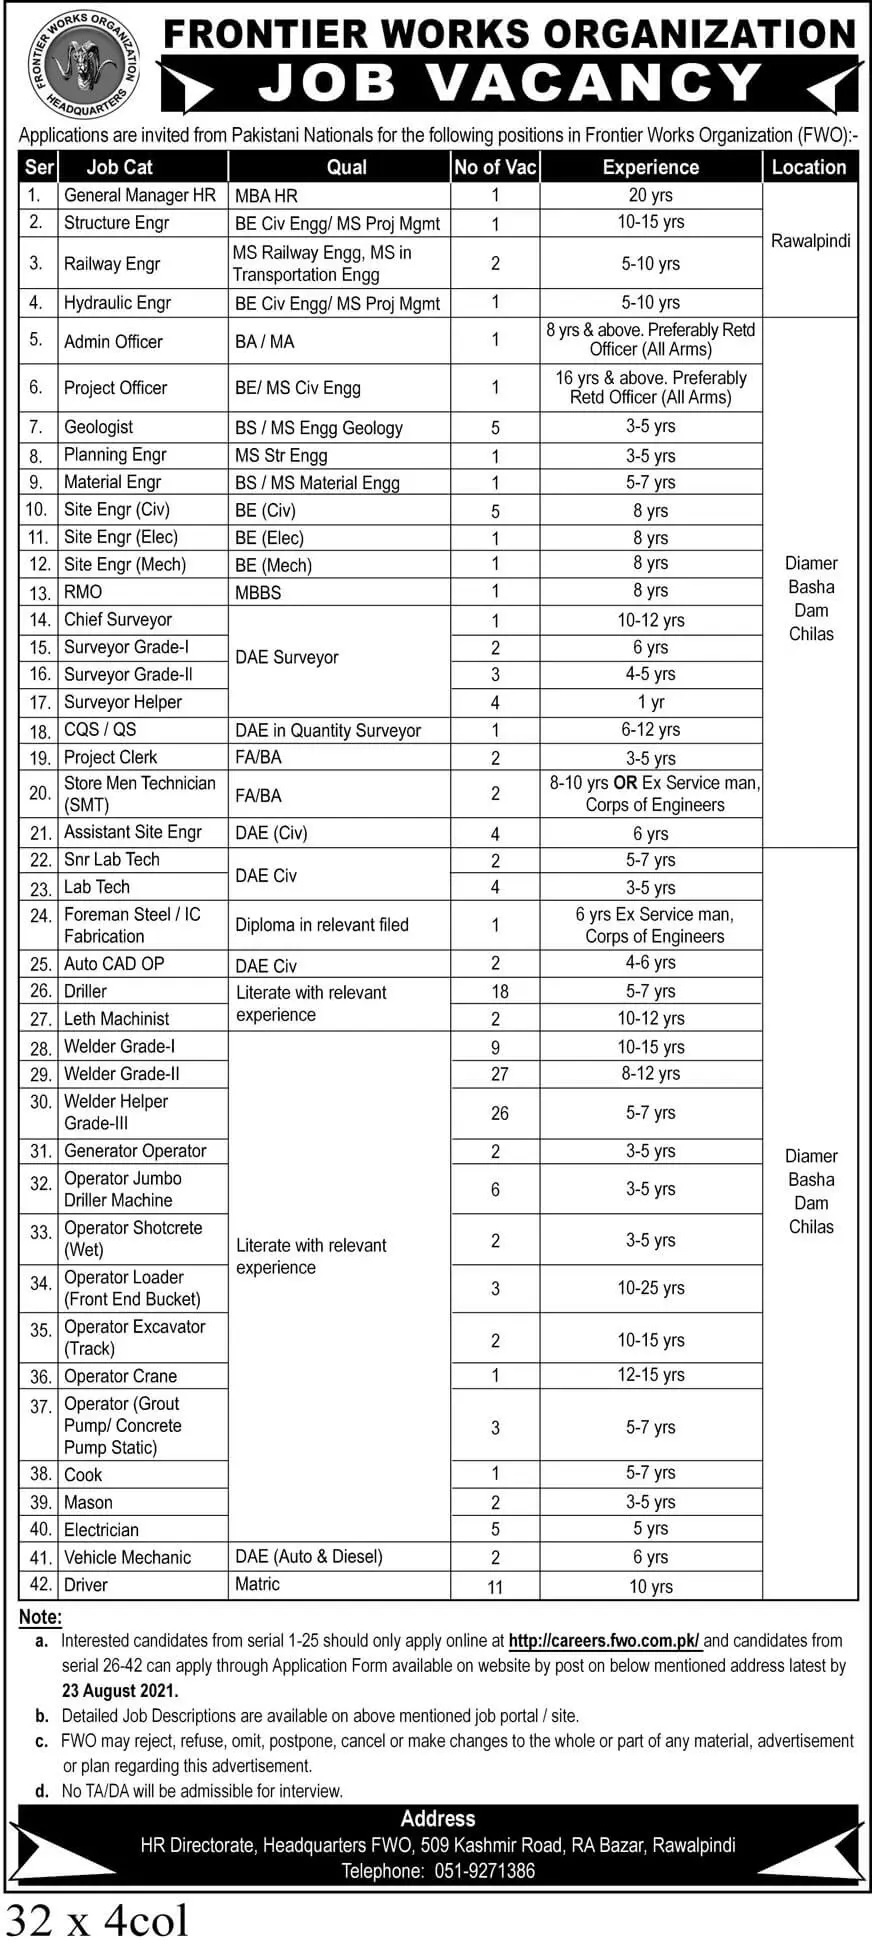 Today Government Jobs in Pakistan 2021 At Frontier Works Organization FWO